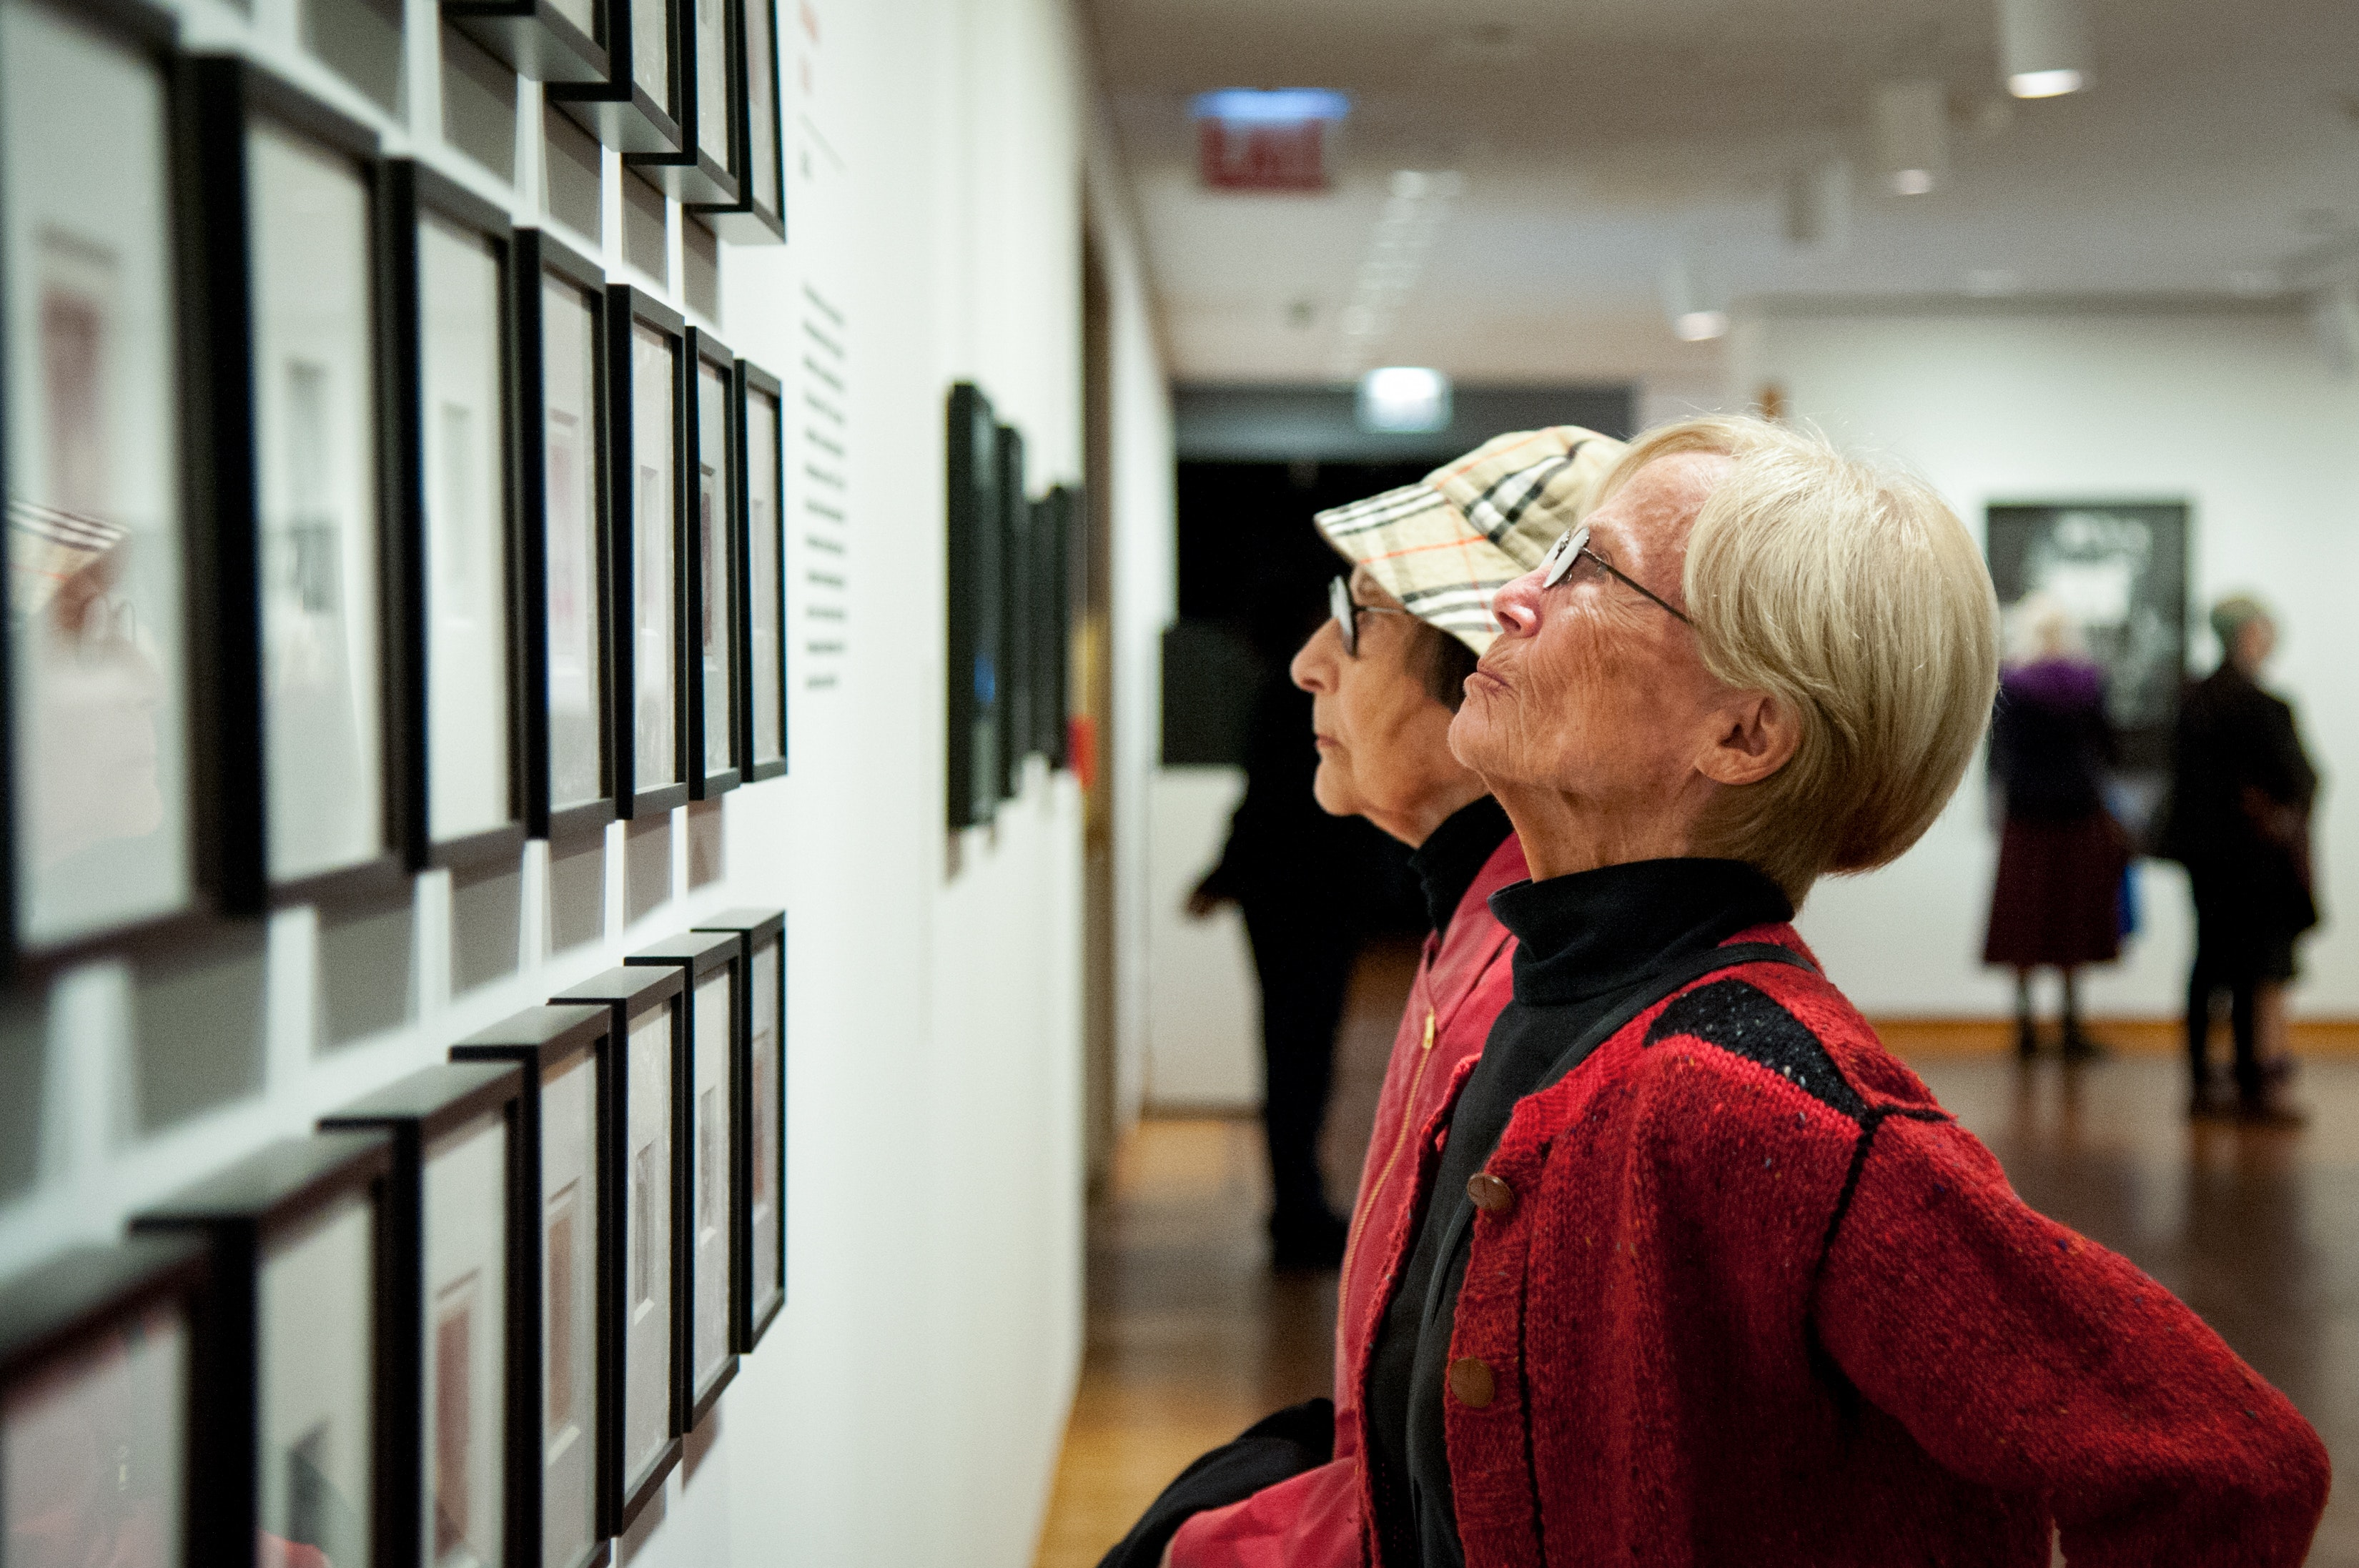 Members of the Buckingham Society view photographs in the Never A Lovely So Real exhibition.